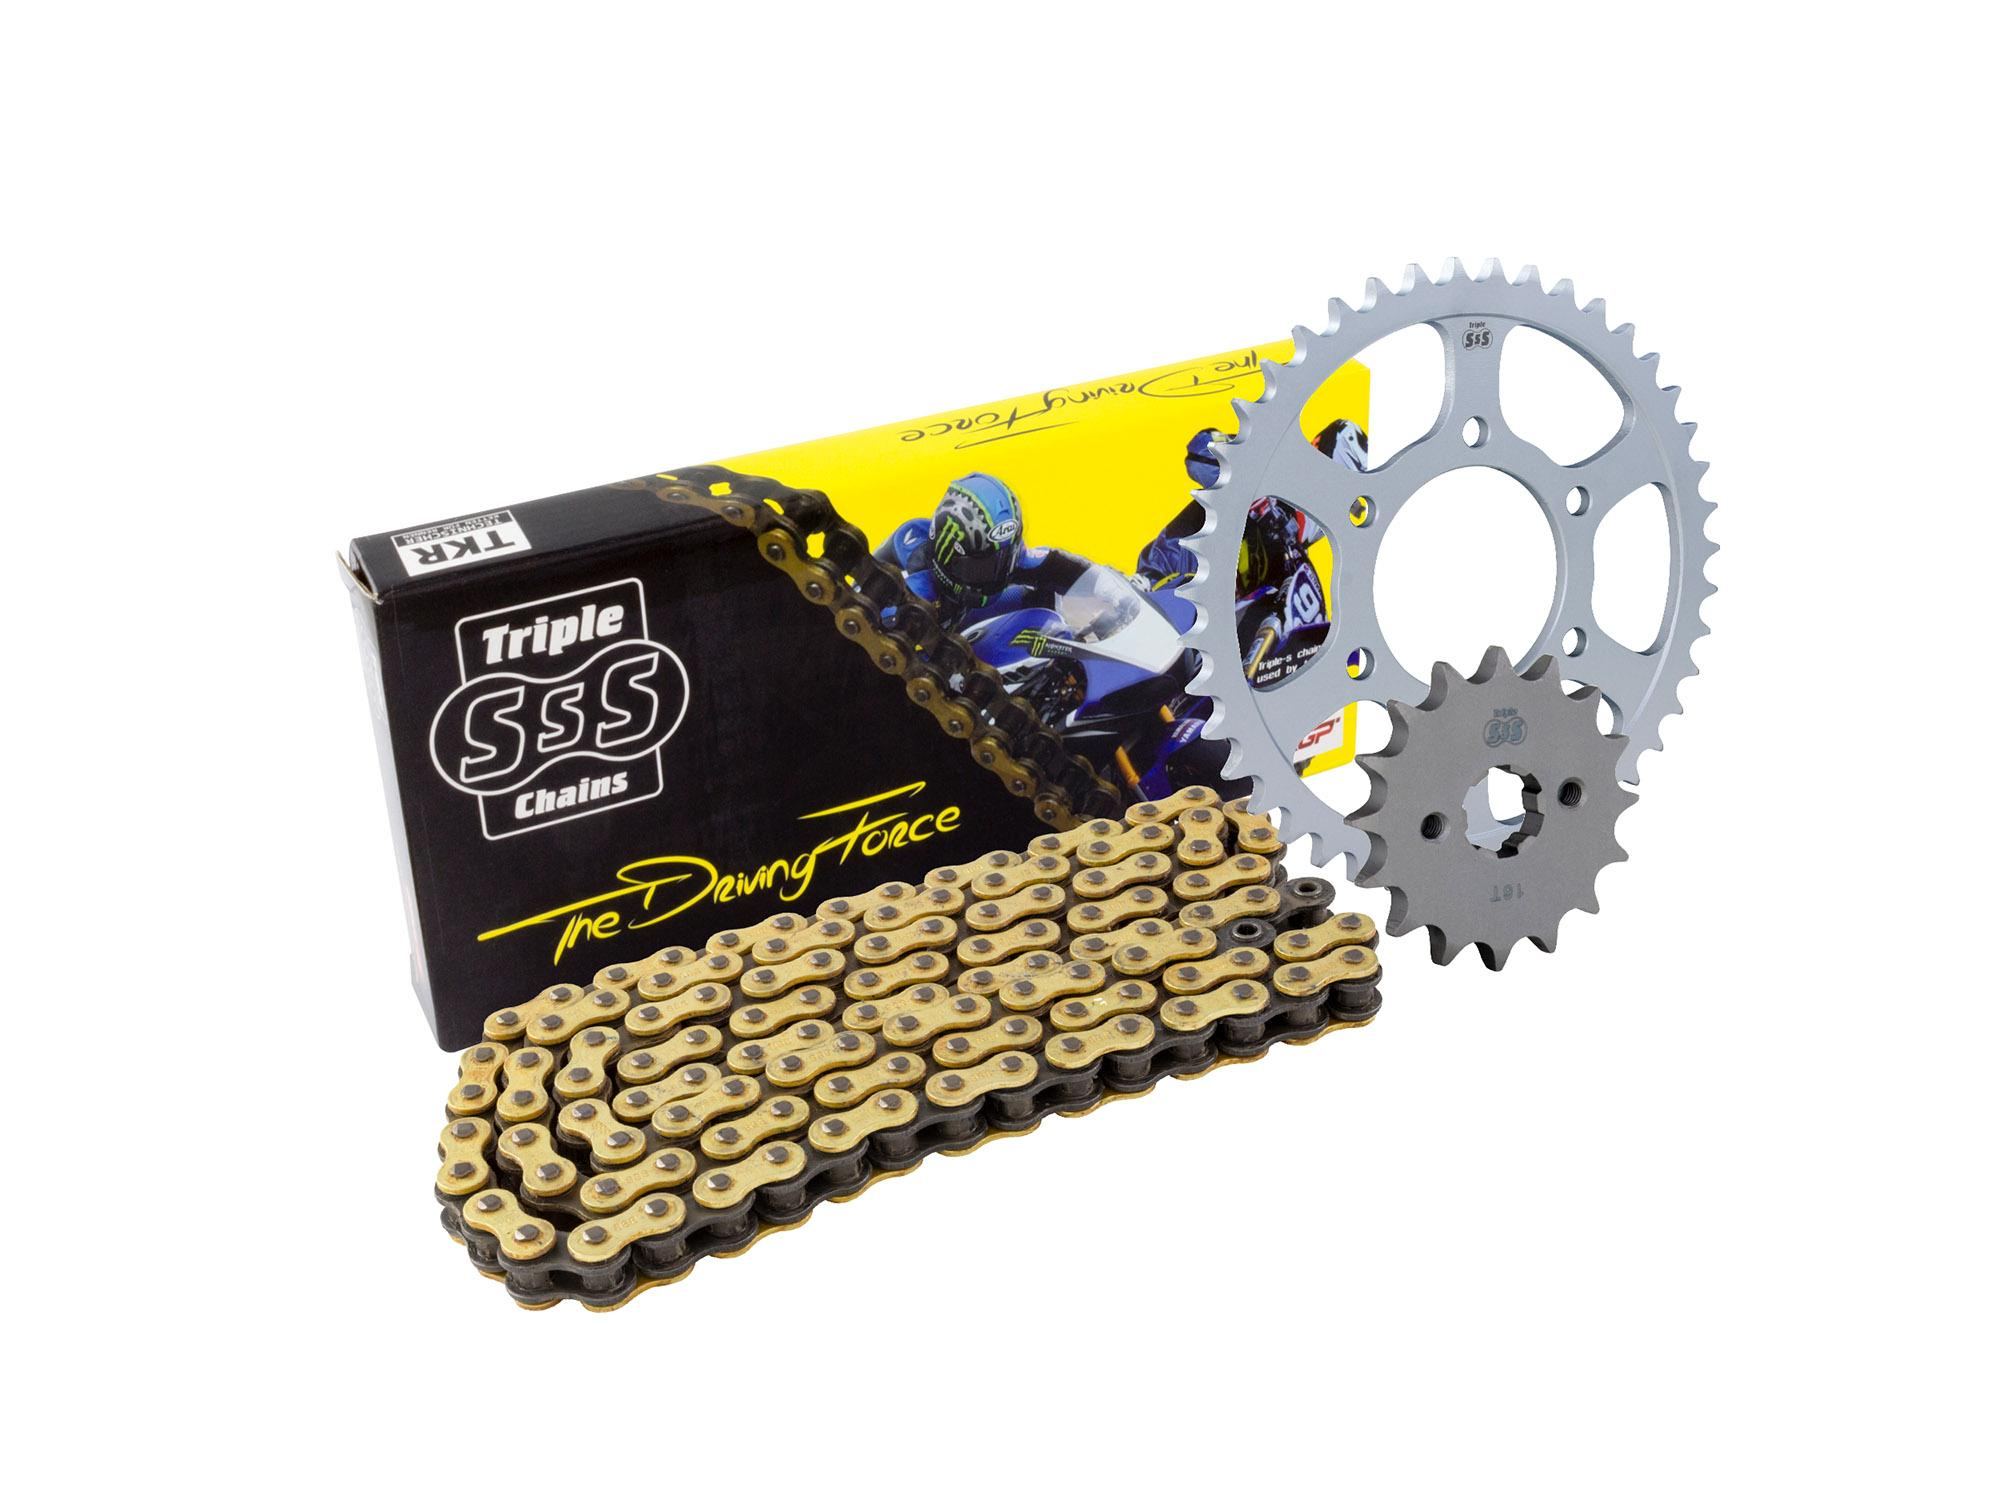 Suzuki GSX-R1100 WS/WT/WV/WW 95-98 Chain & Sprocket Kit: 16T Front, 44T Rear, HD O-Ring Gold Chain 530H 116 Link